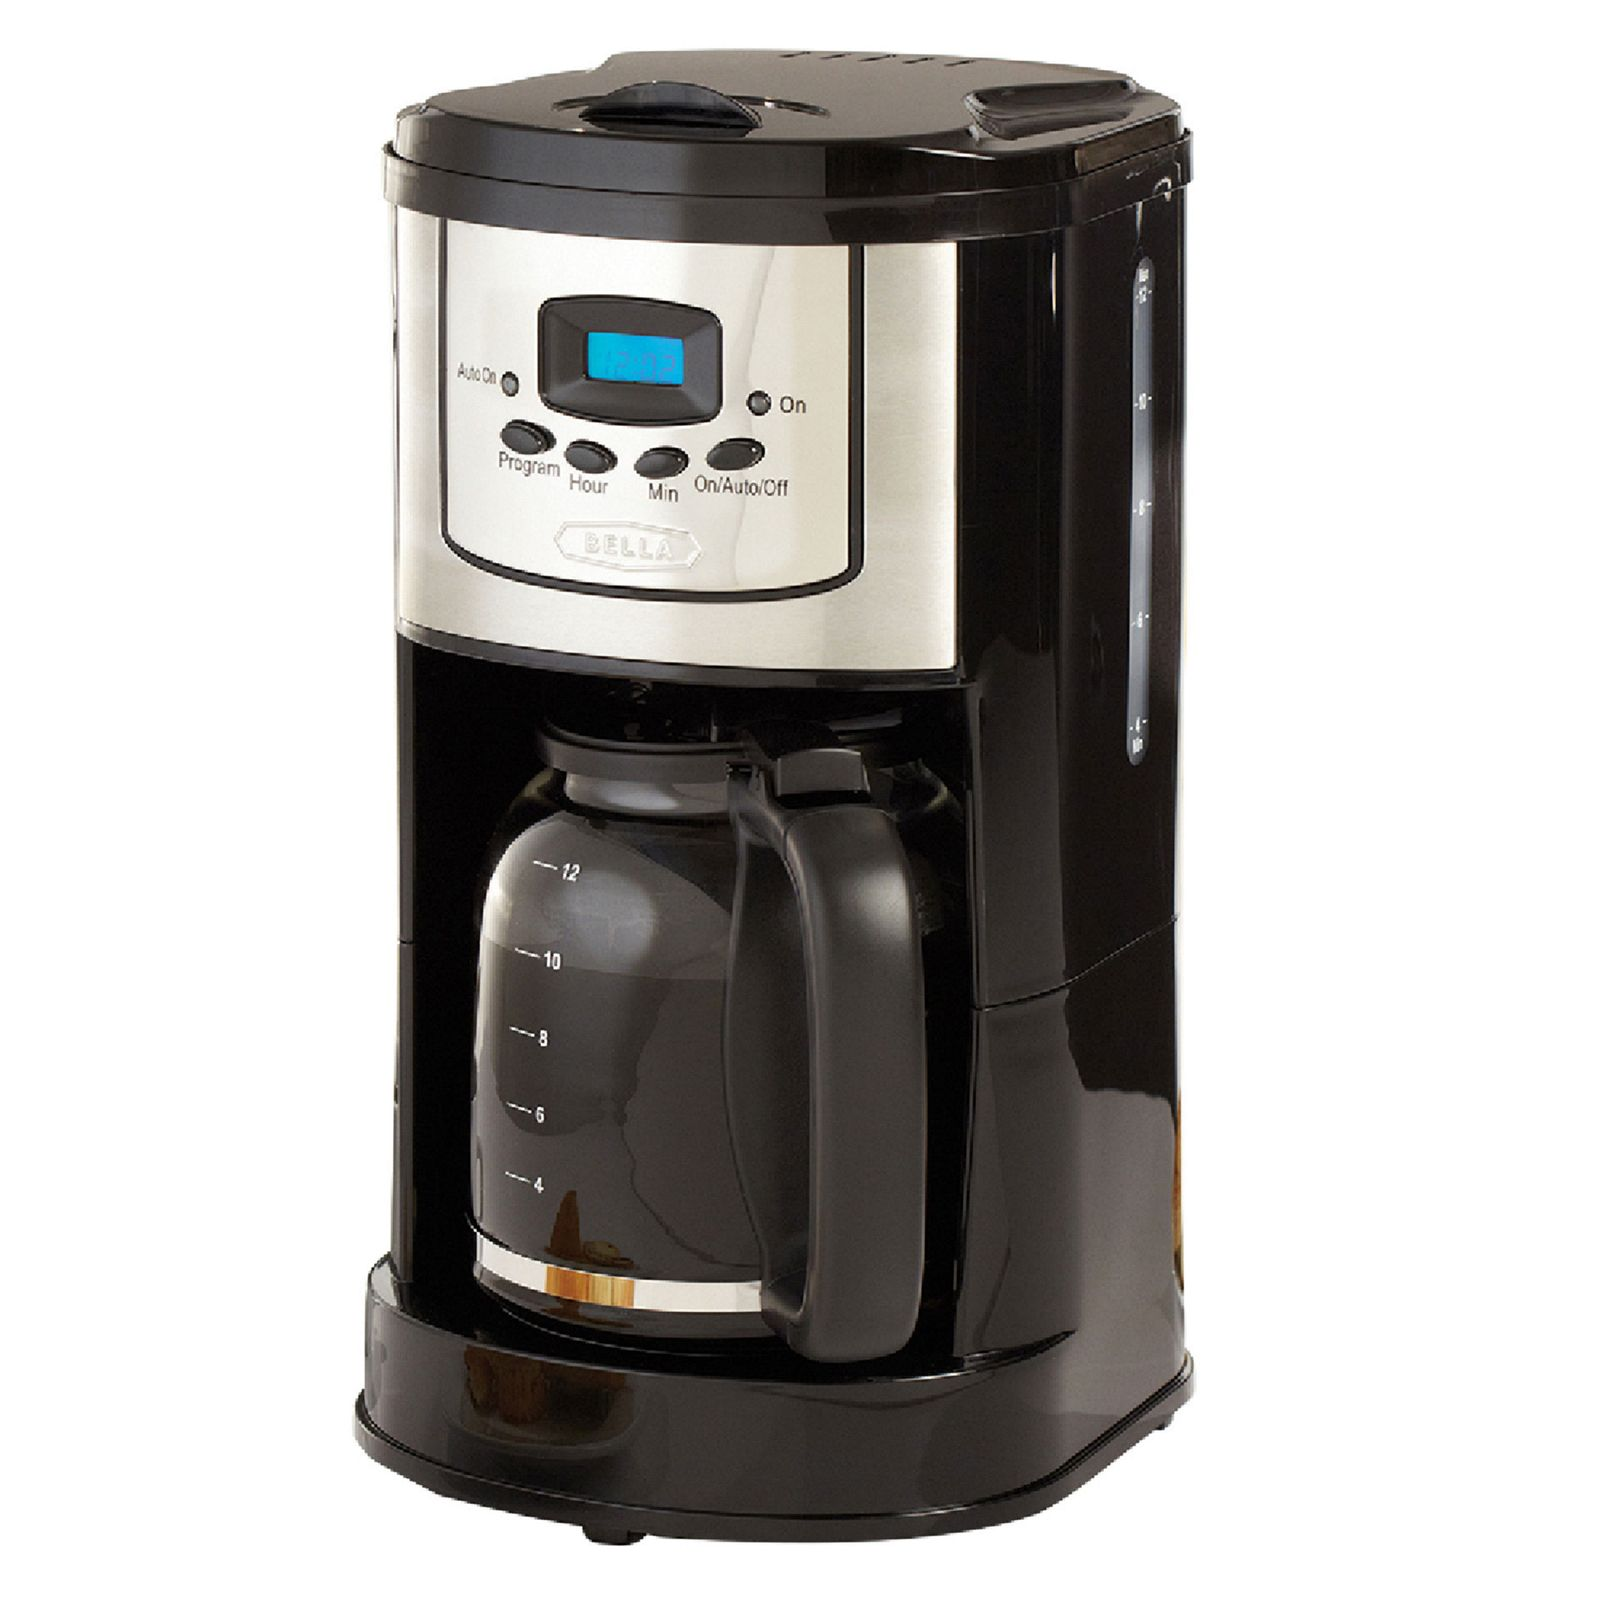 Bella Coffee Maker One Cup Reviews : Bella 12-Cup Programmable Coffeemaker #13923 Review